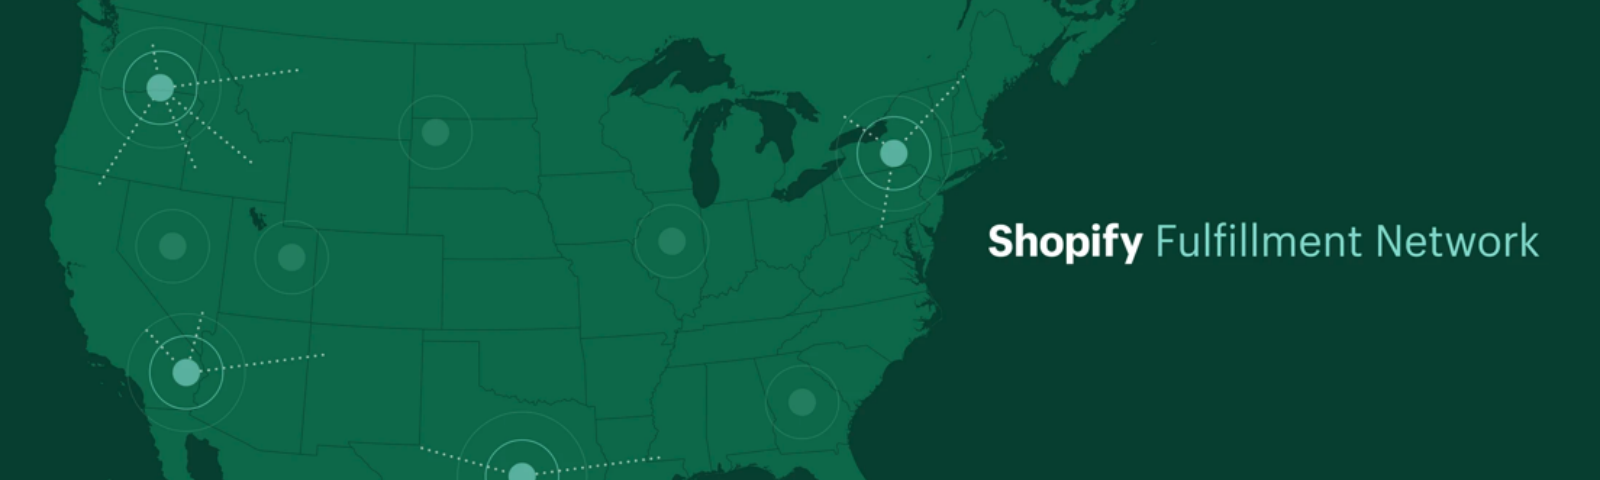 A map of the Shopify Fulfillment Network.